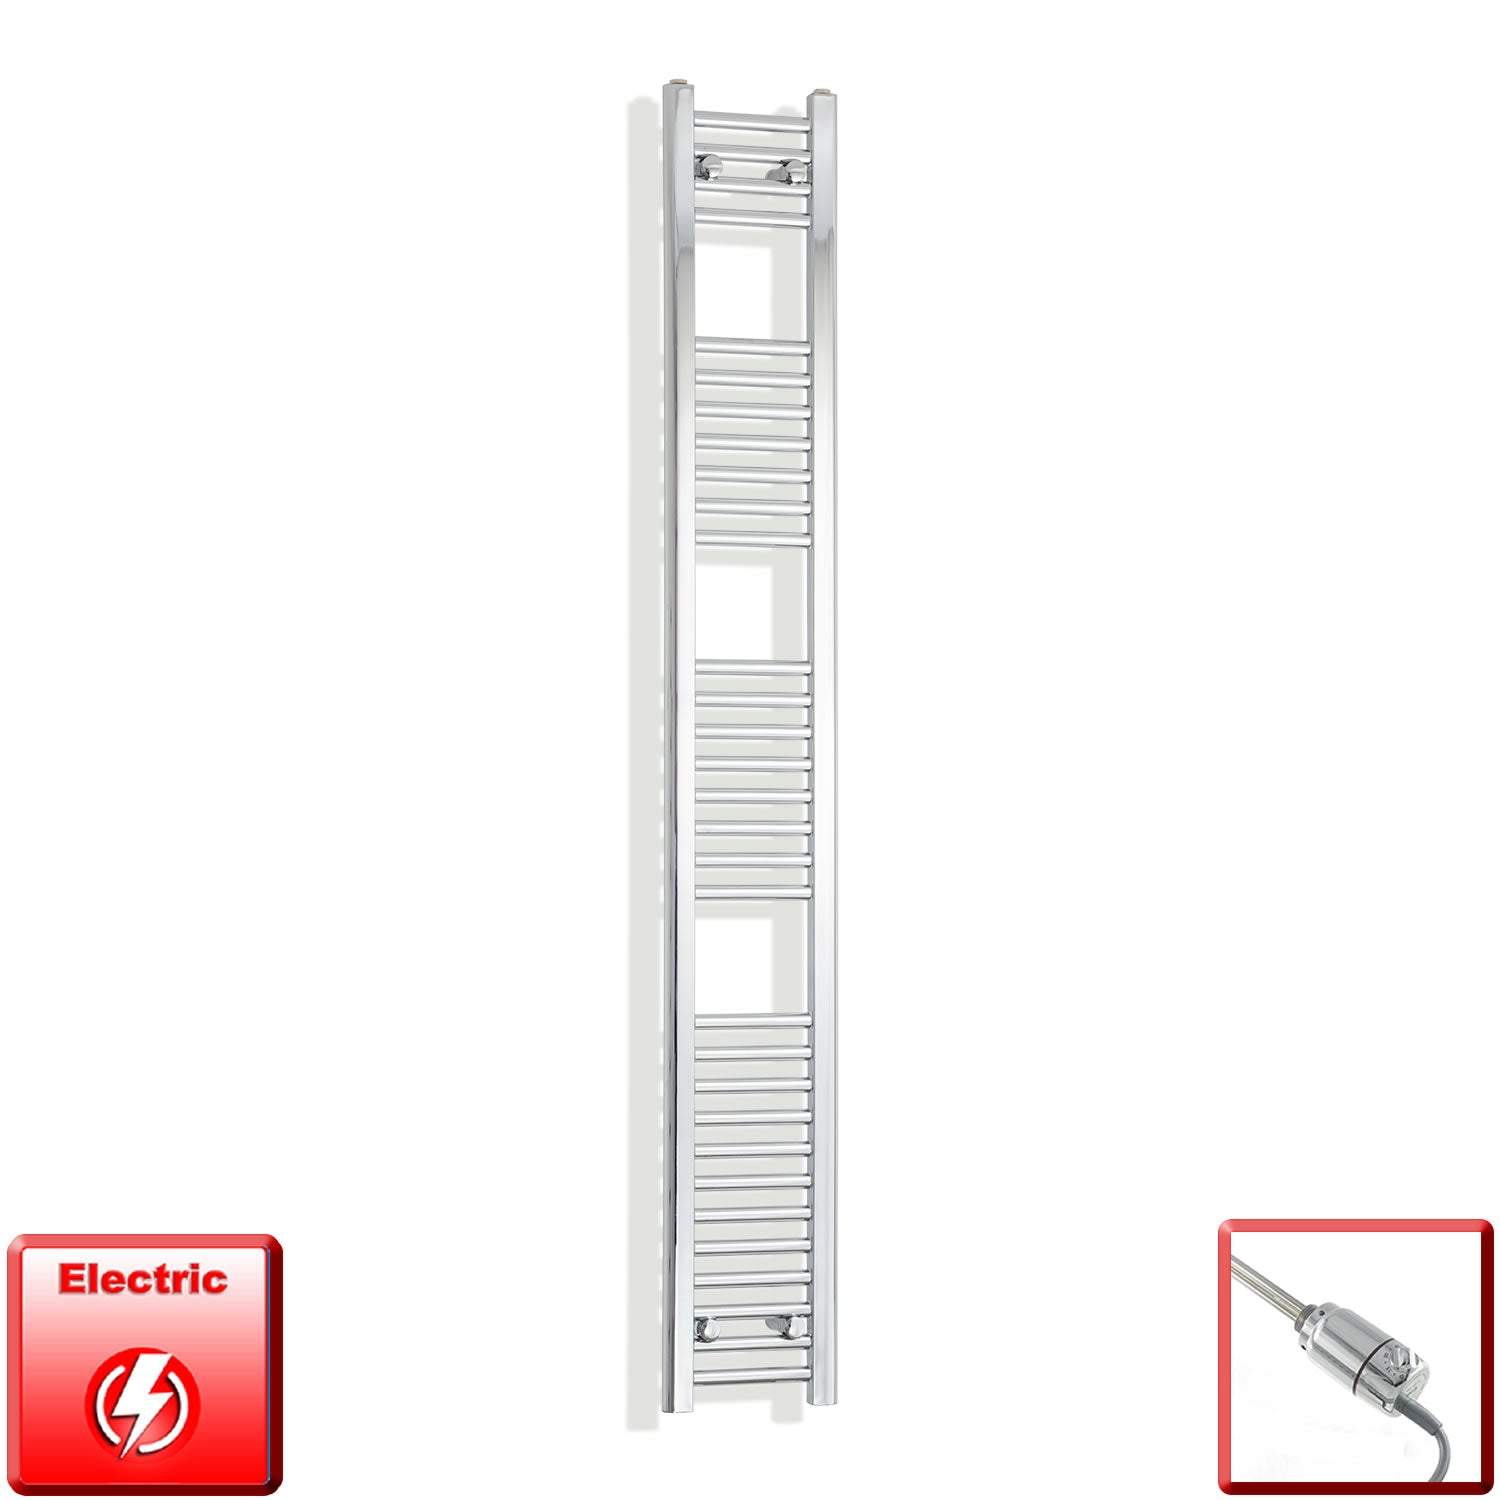 250mm Wide 1800mm High Pre-Filled Chrome Electric Towel Rail Radiator With Thermostatic GT Element